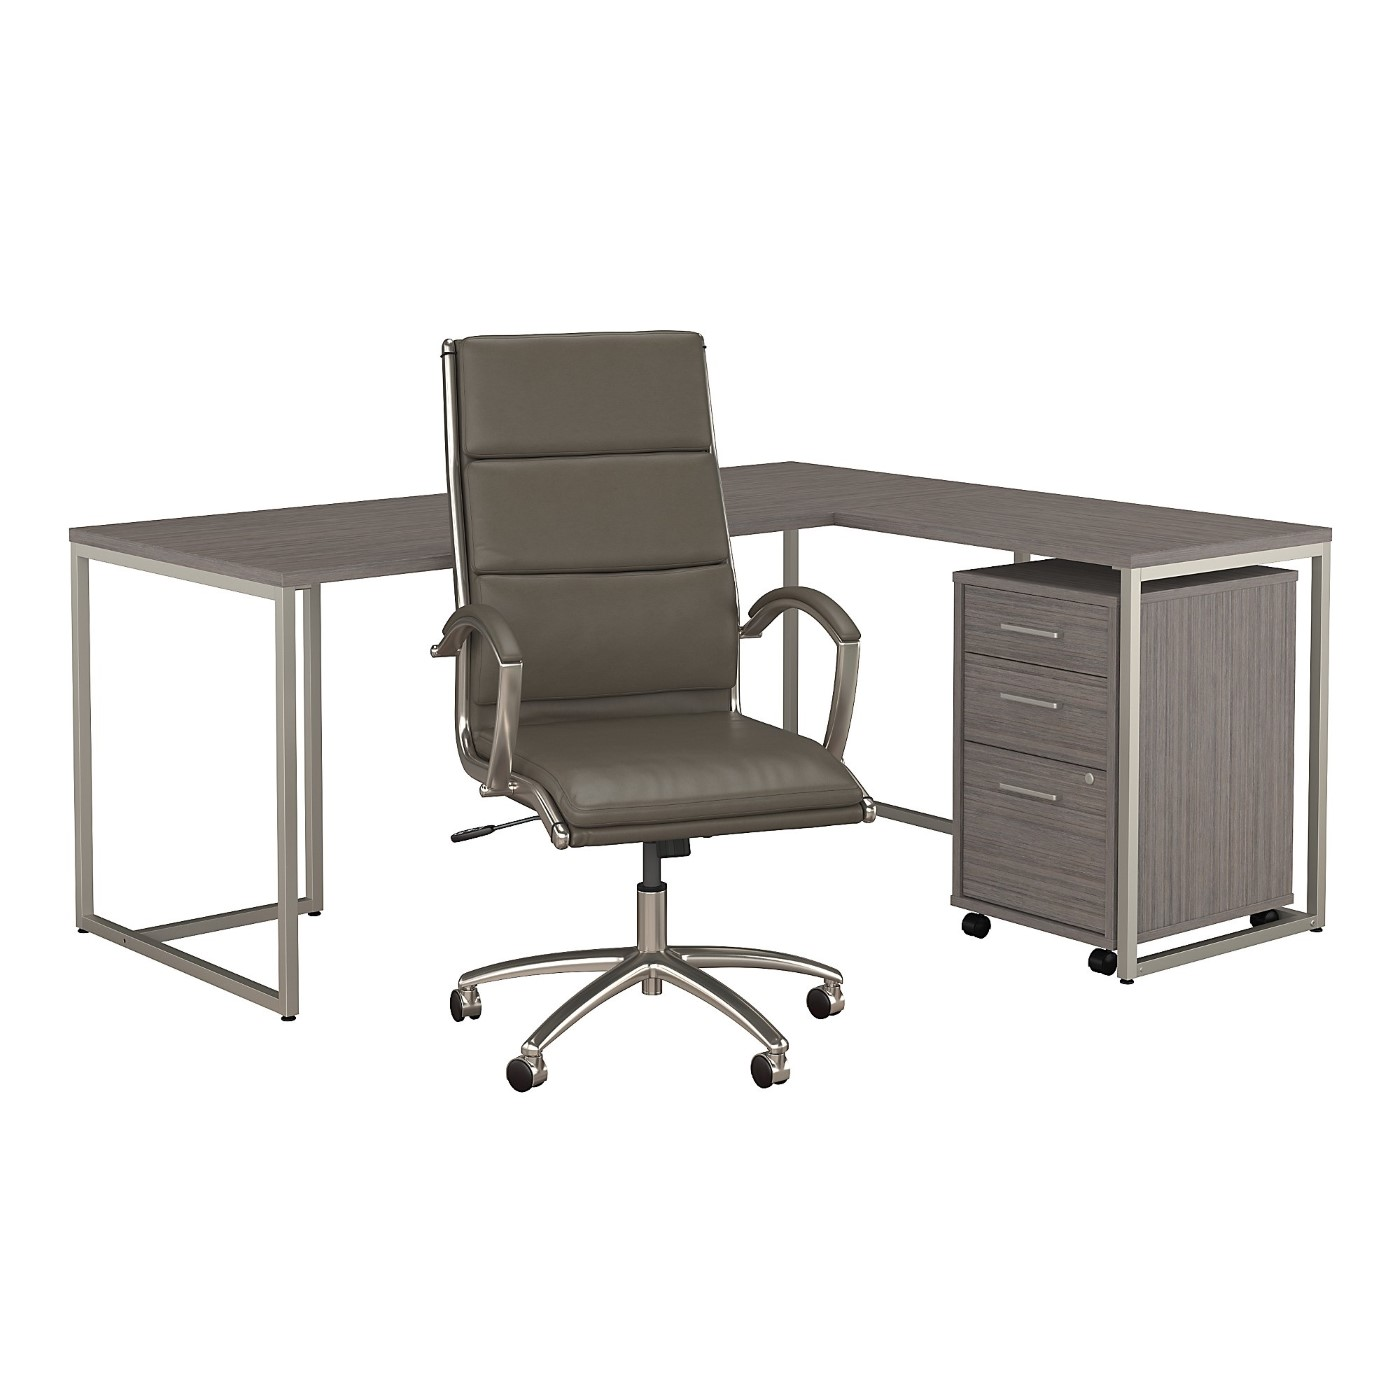 OFFICE BY KATHY IRELAND® METHOD 72W L SHAPED DESK WITH MOBILE FILE CABINET AND HIGH BACK OFFICE CHAIR. FREE SHIPPING